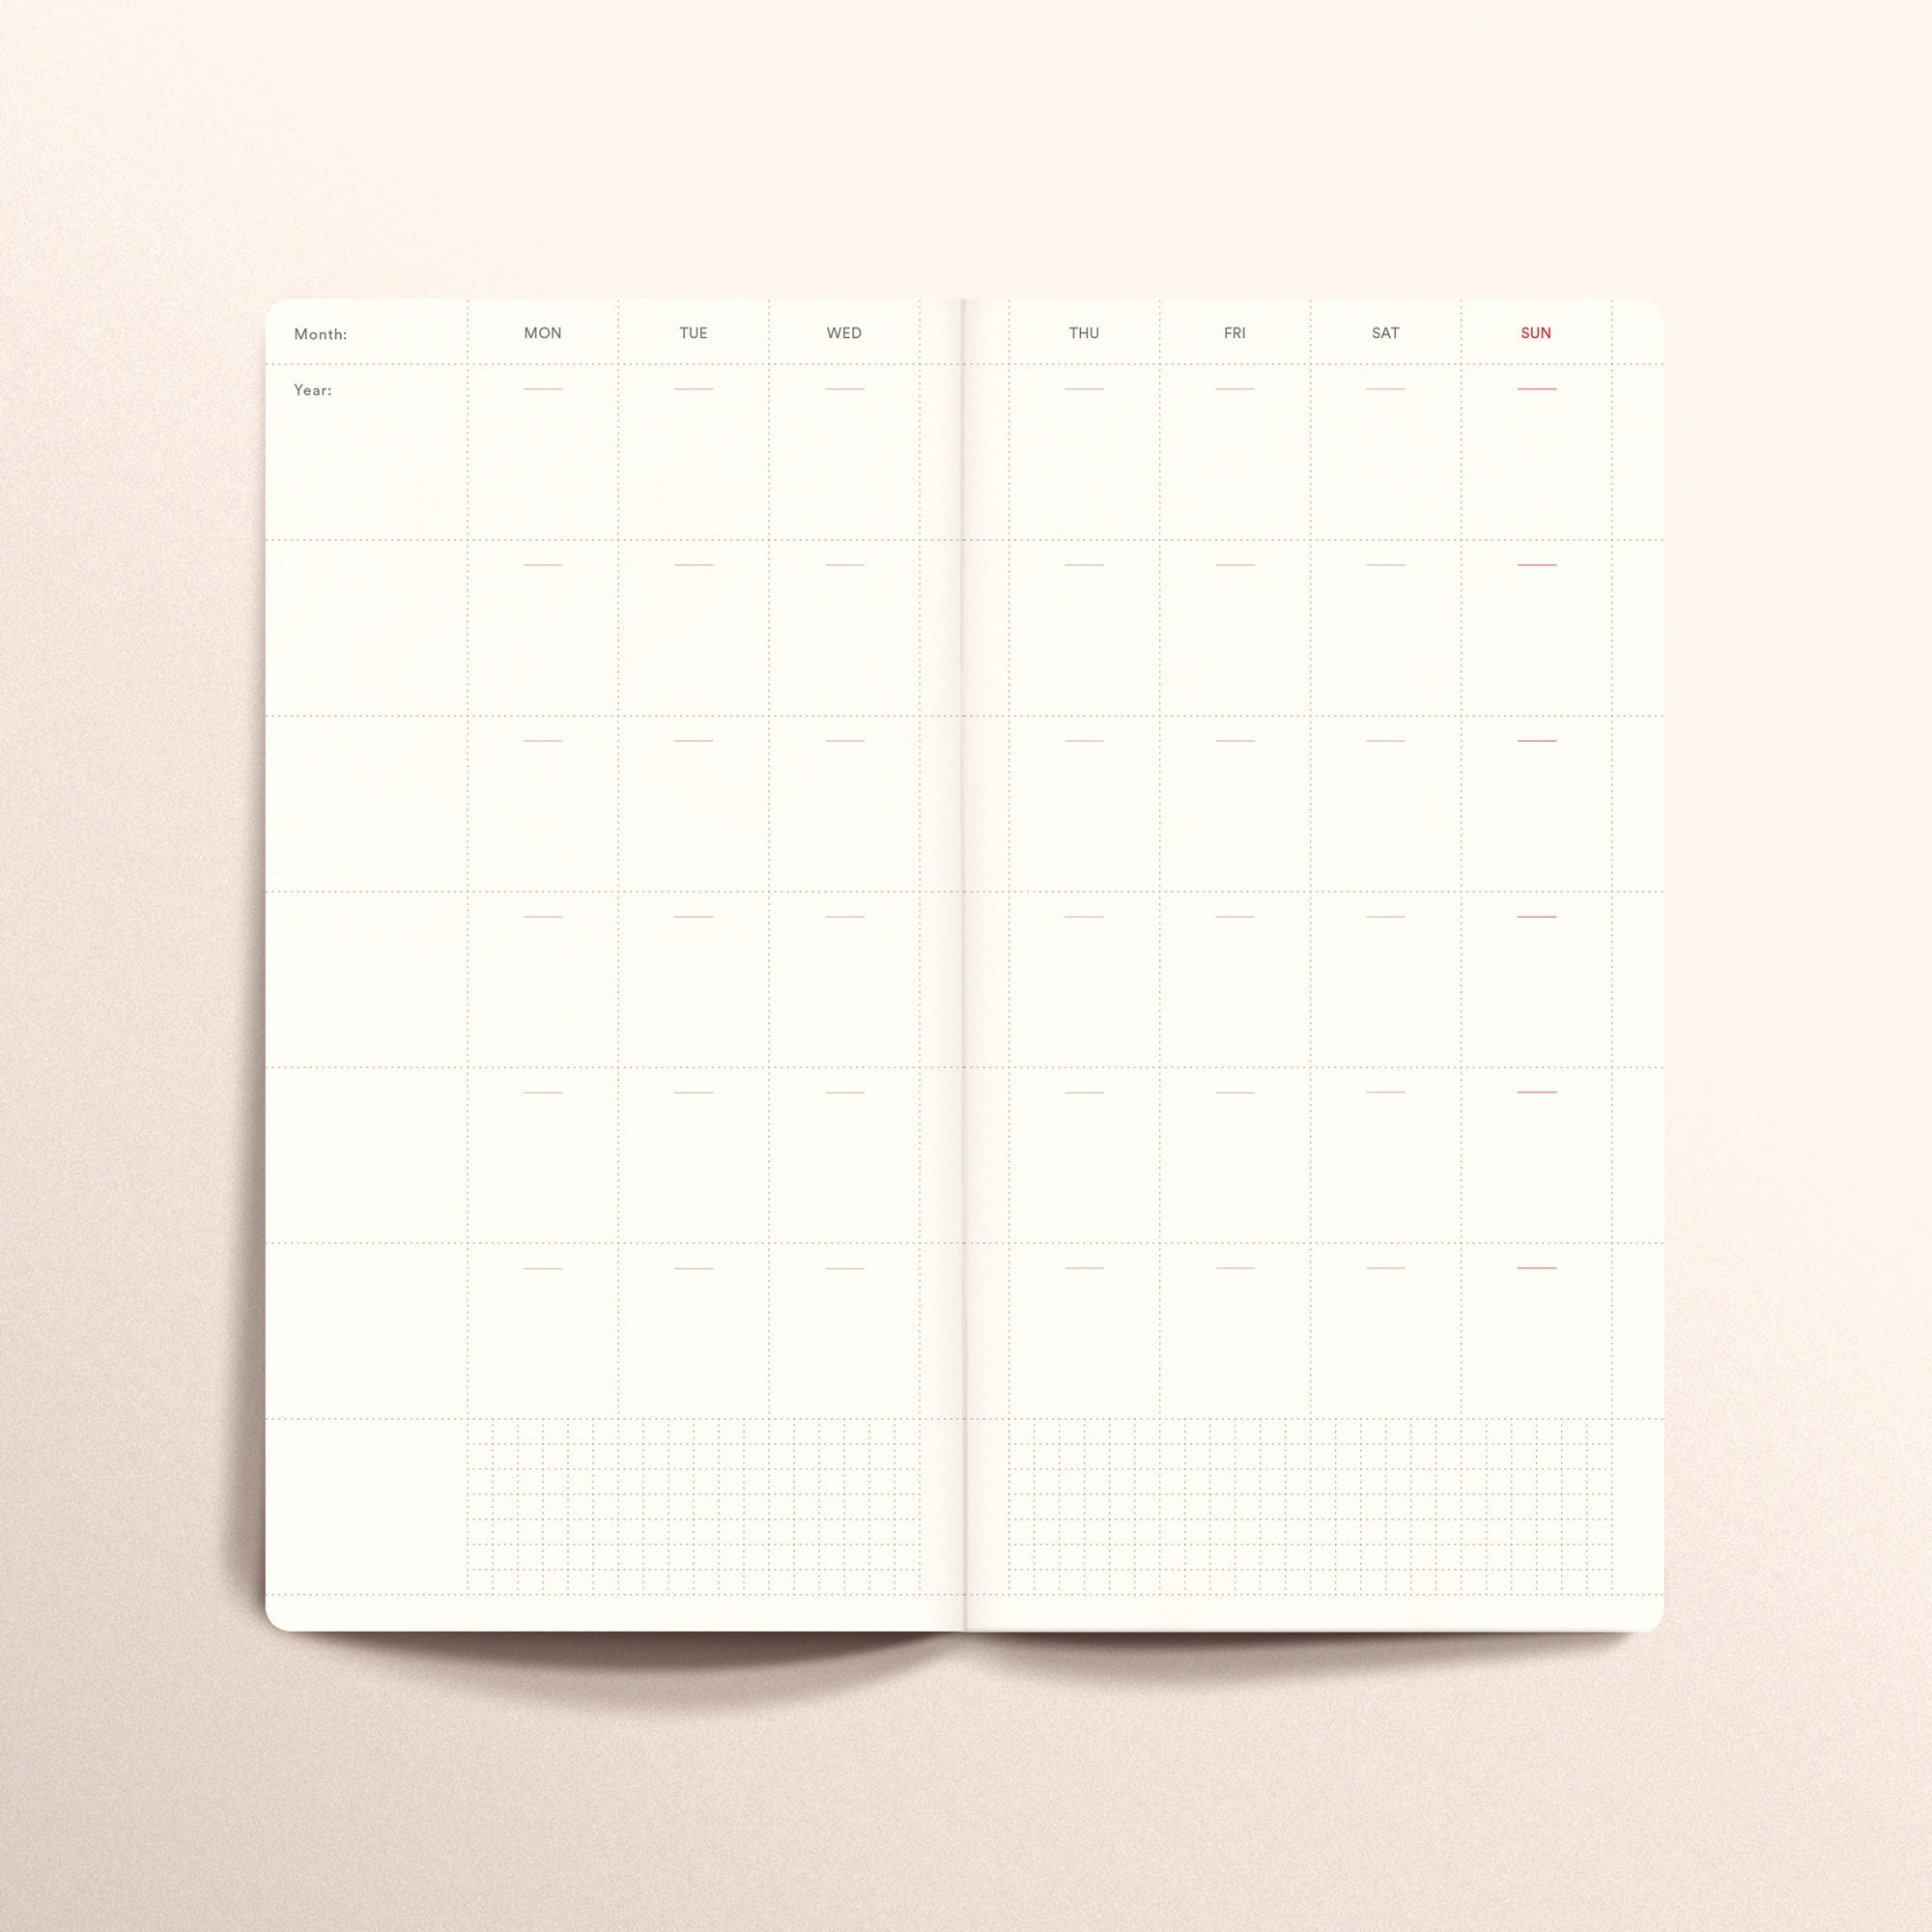 N.302 (Undated Weekly Planner) Slim / Traveler's notebook size [R]